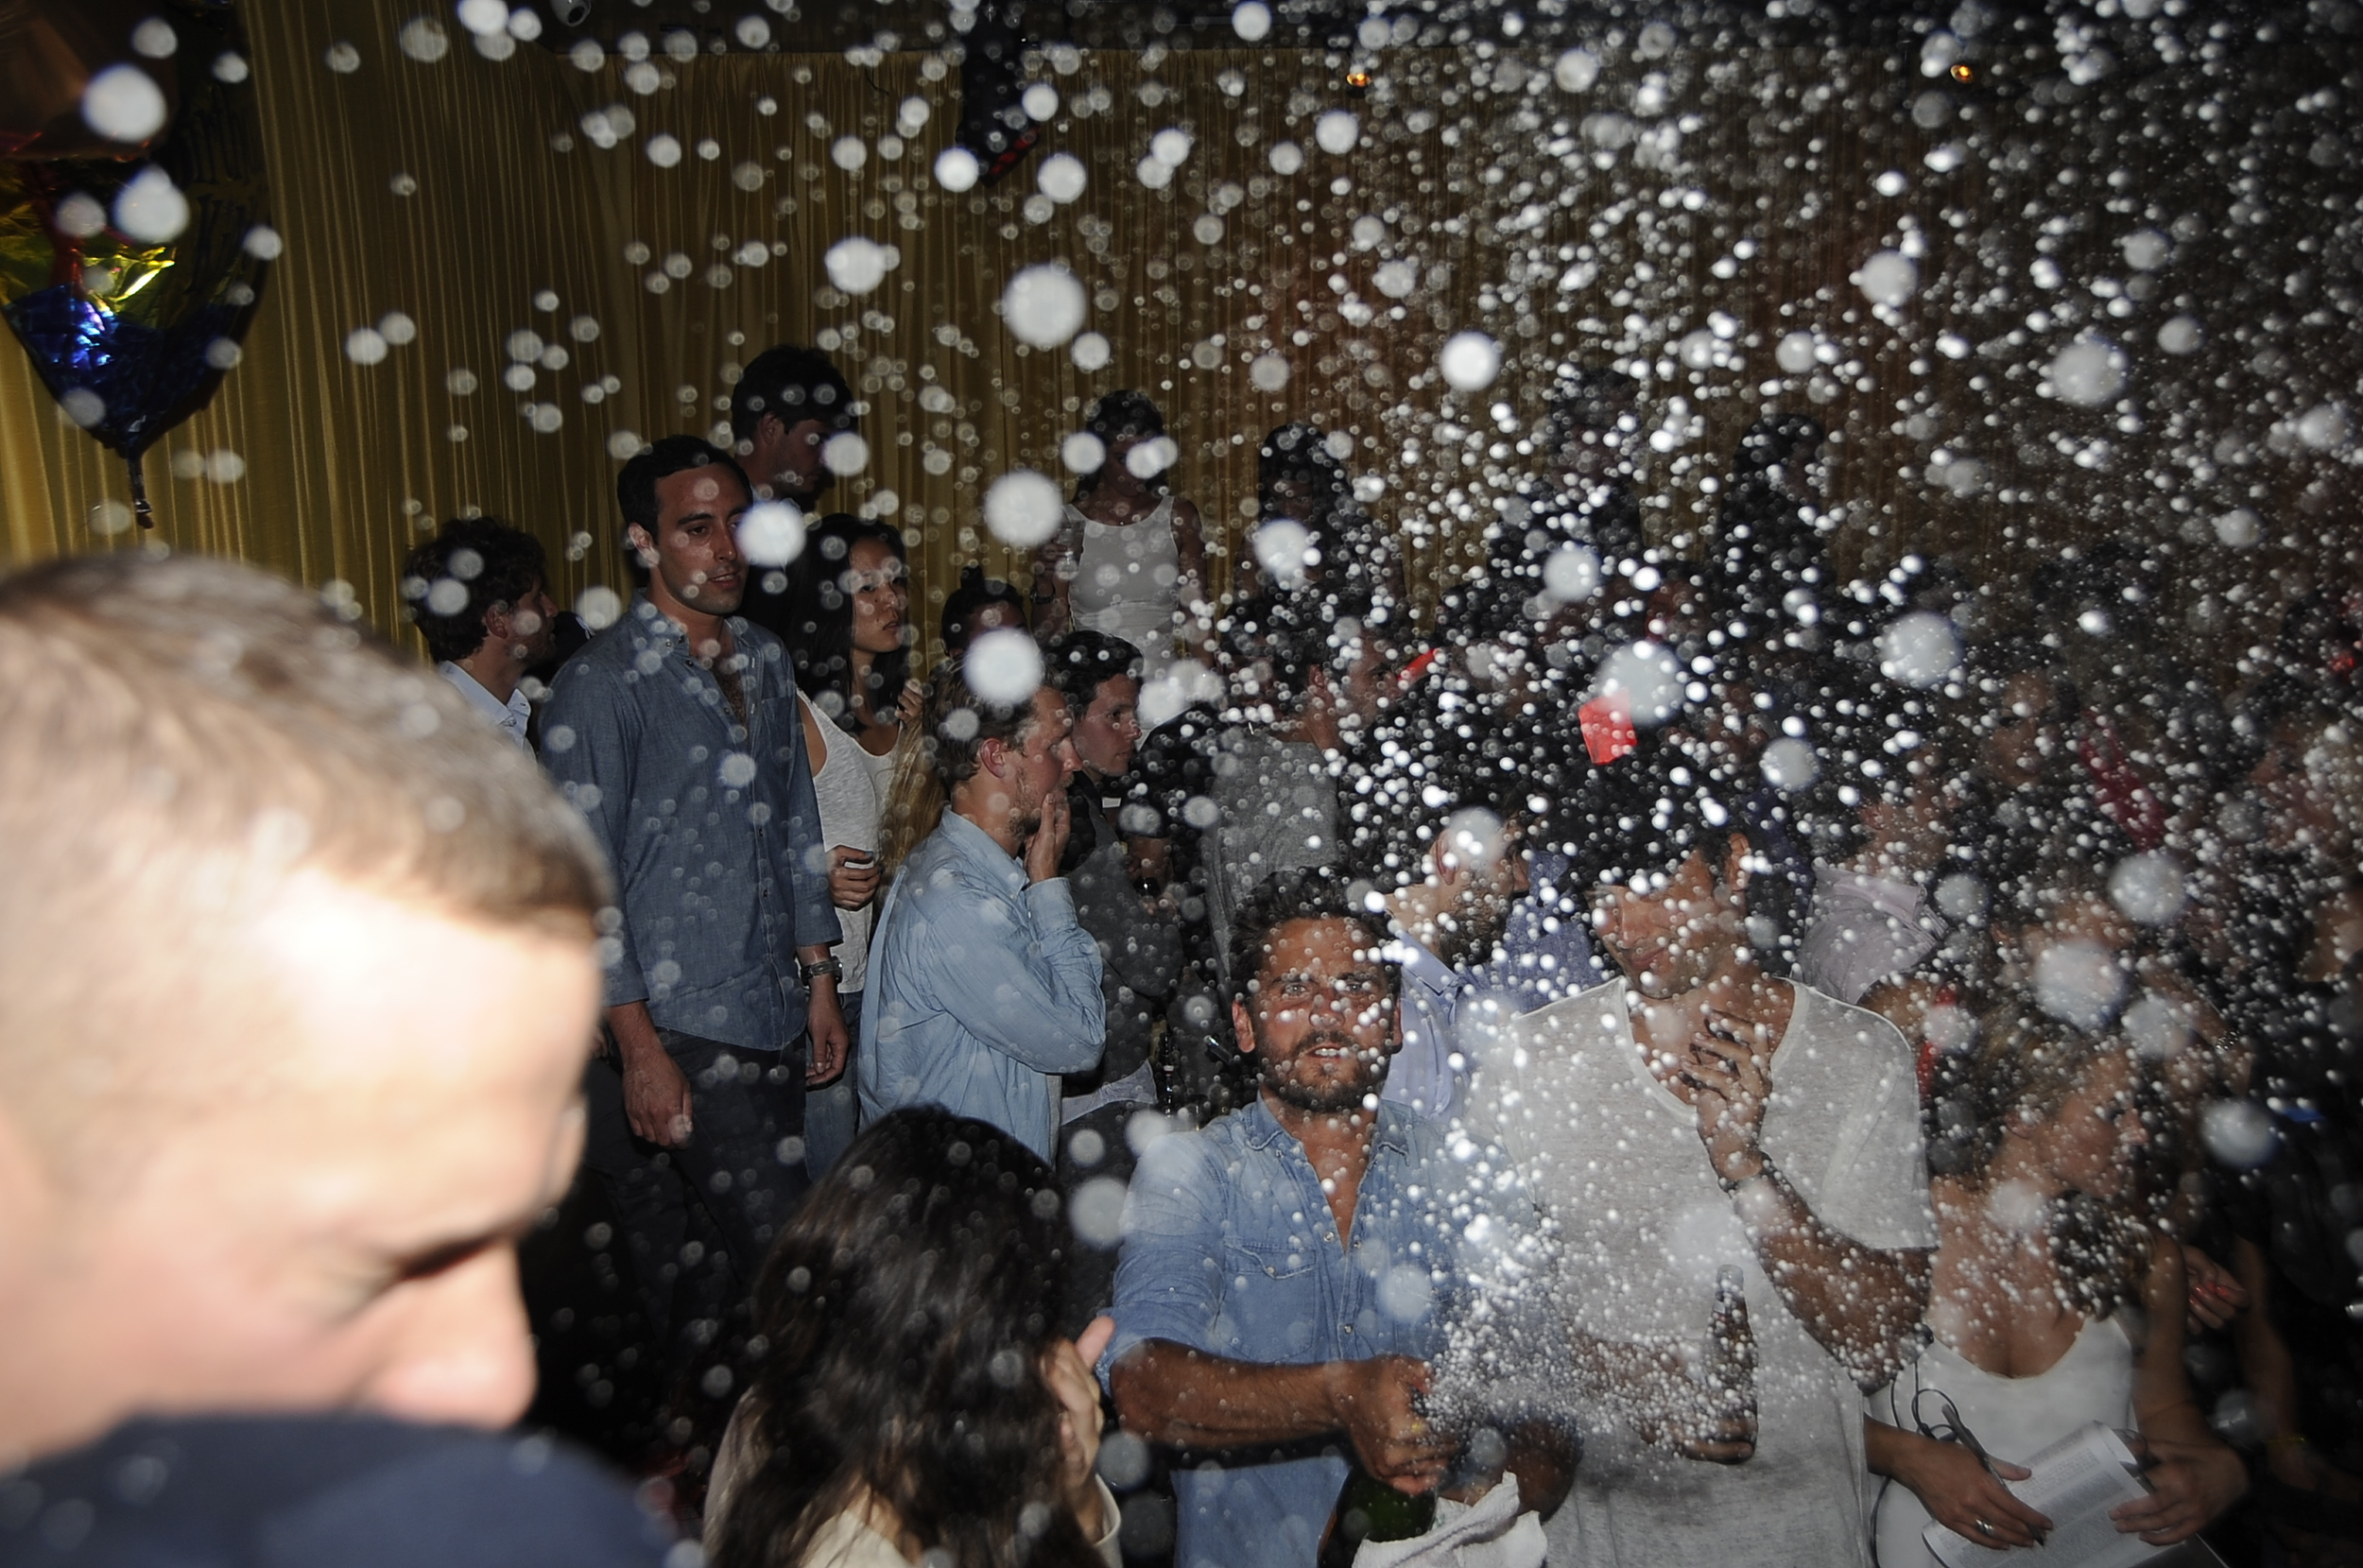 Scott Disick acts out spraying Champagne at 10oak in South Hampton.